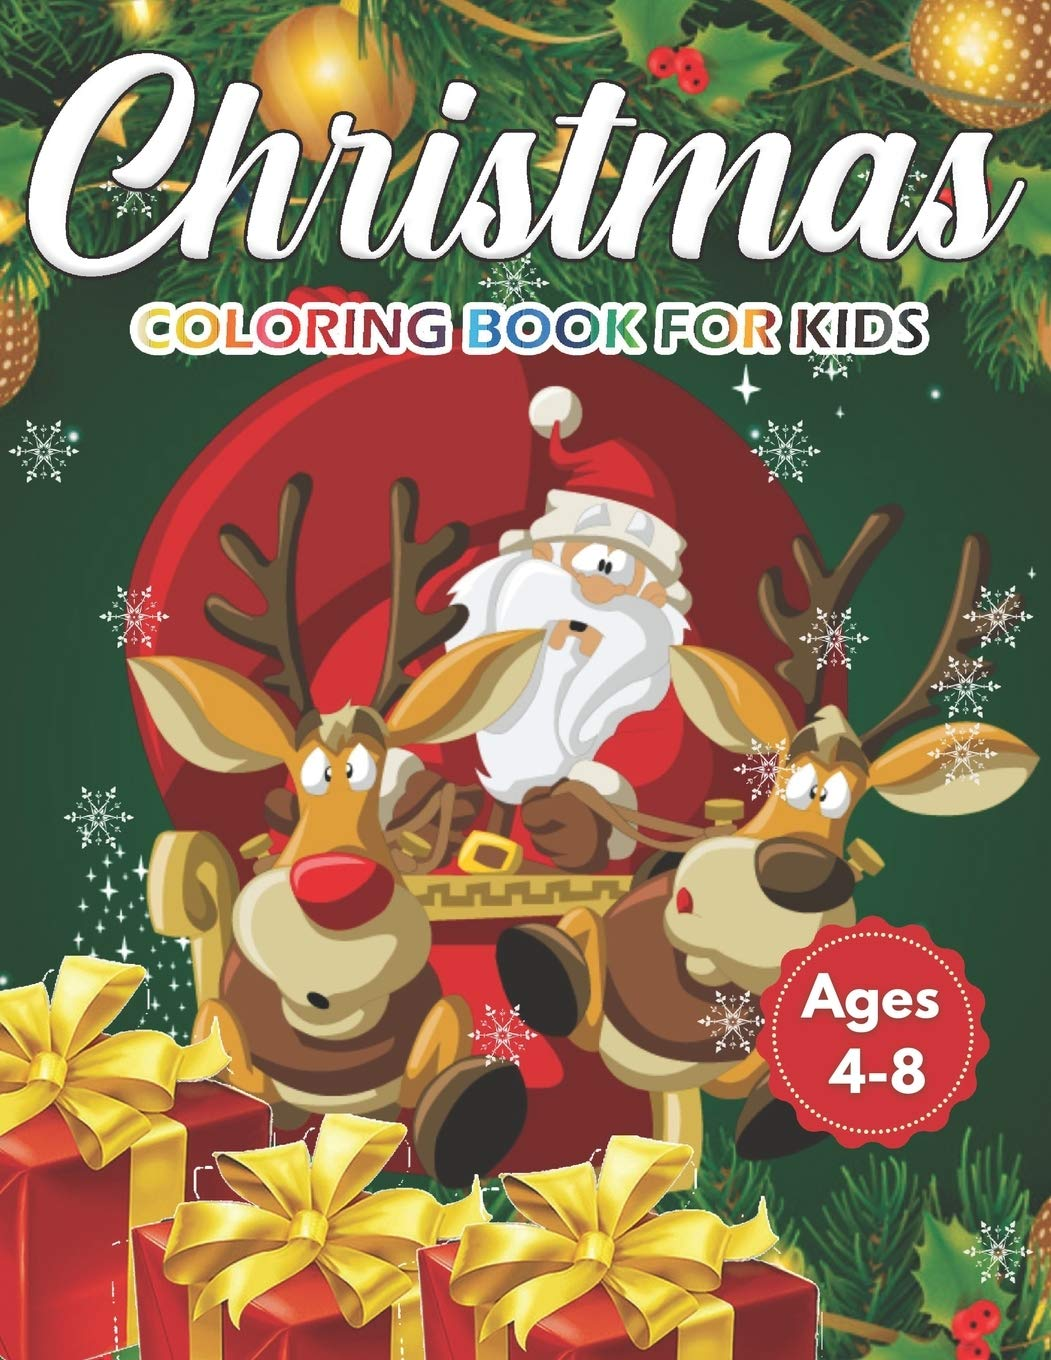 Christmas Coloring Book For Kids Ages 4 8 Cute Children S Christmas Gift Or Present For Toddlers Kids Beautiful Pages To Color With Santa Claus Easy And Relaxing Designs Holiday